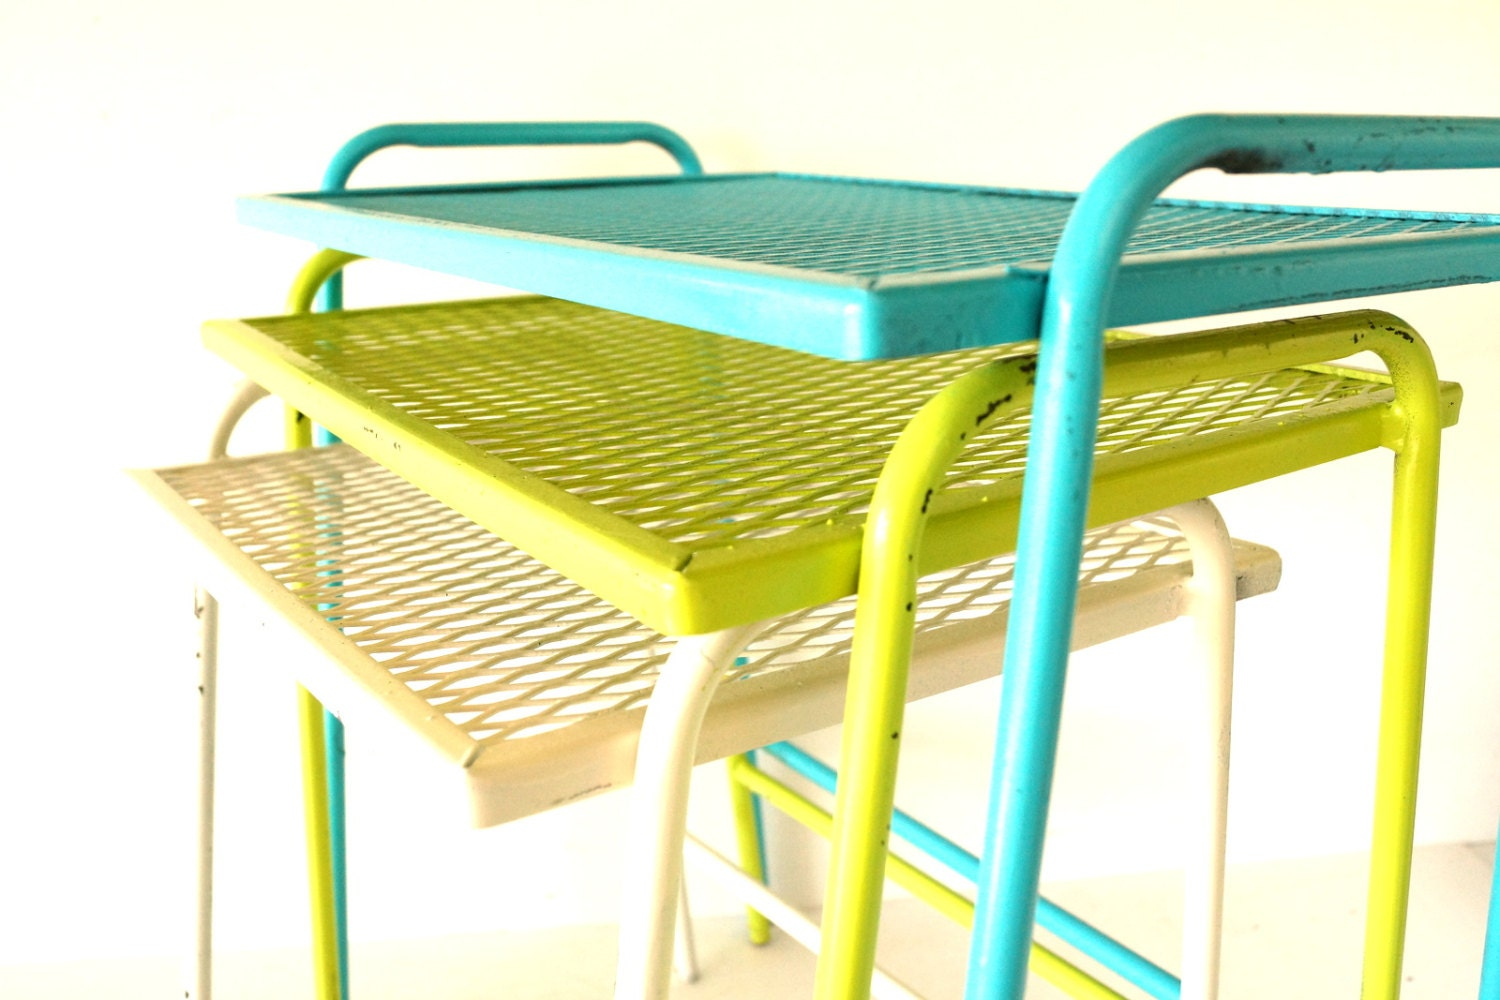 Vintage Metal Mesh Nesting Patio Tables in Aqua Lime White